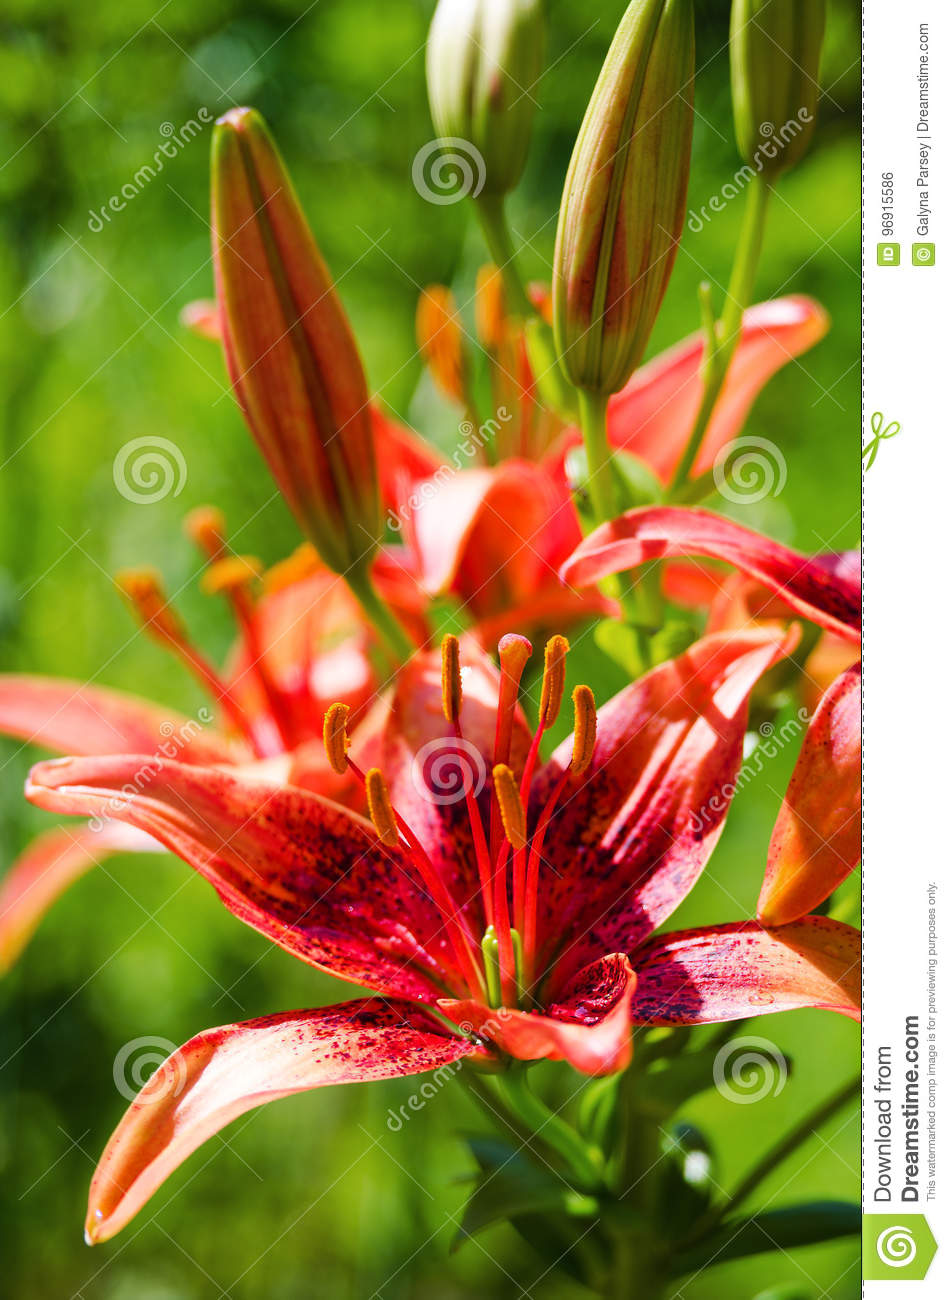 Beautiful lily flowers grow in the summer stock photo image of download beautiful lily flowers grow in the summer stock photo image of lilly flower izmirmasajfo